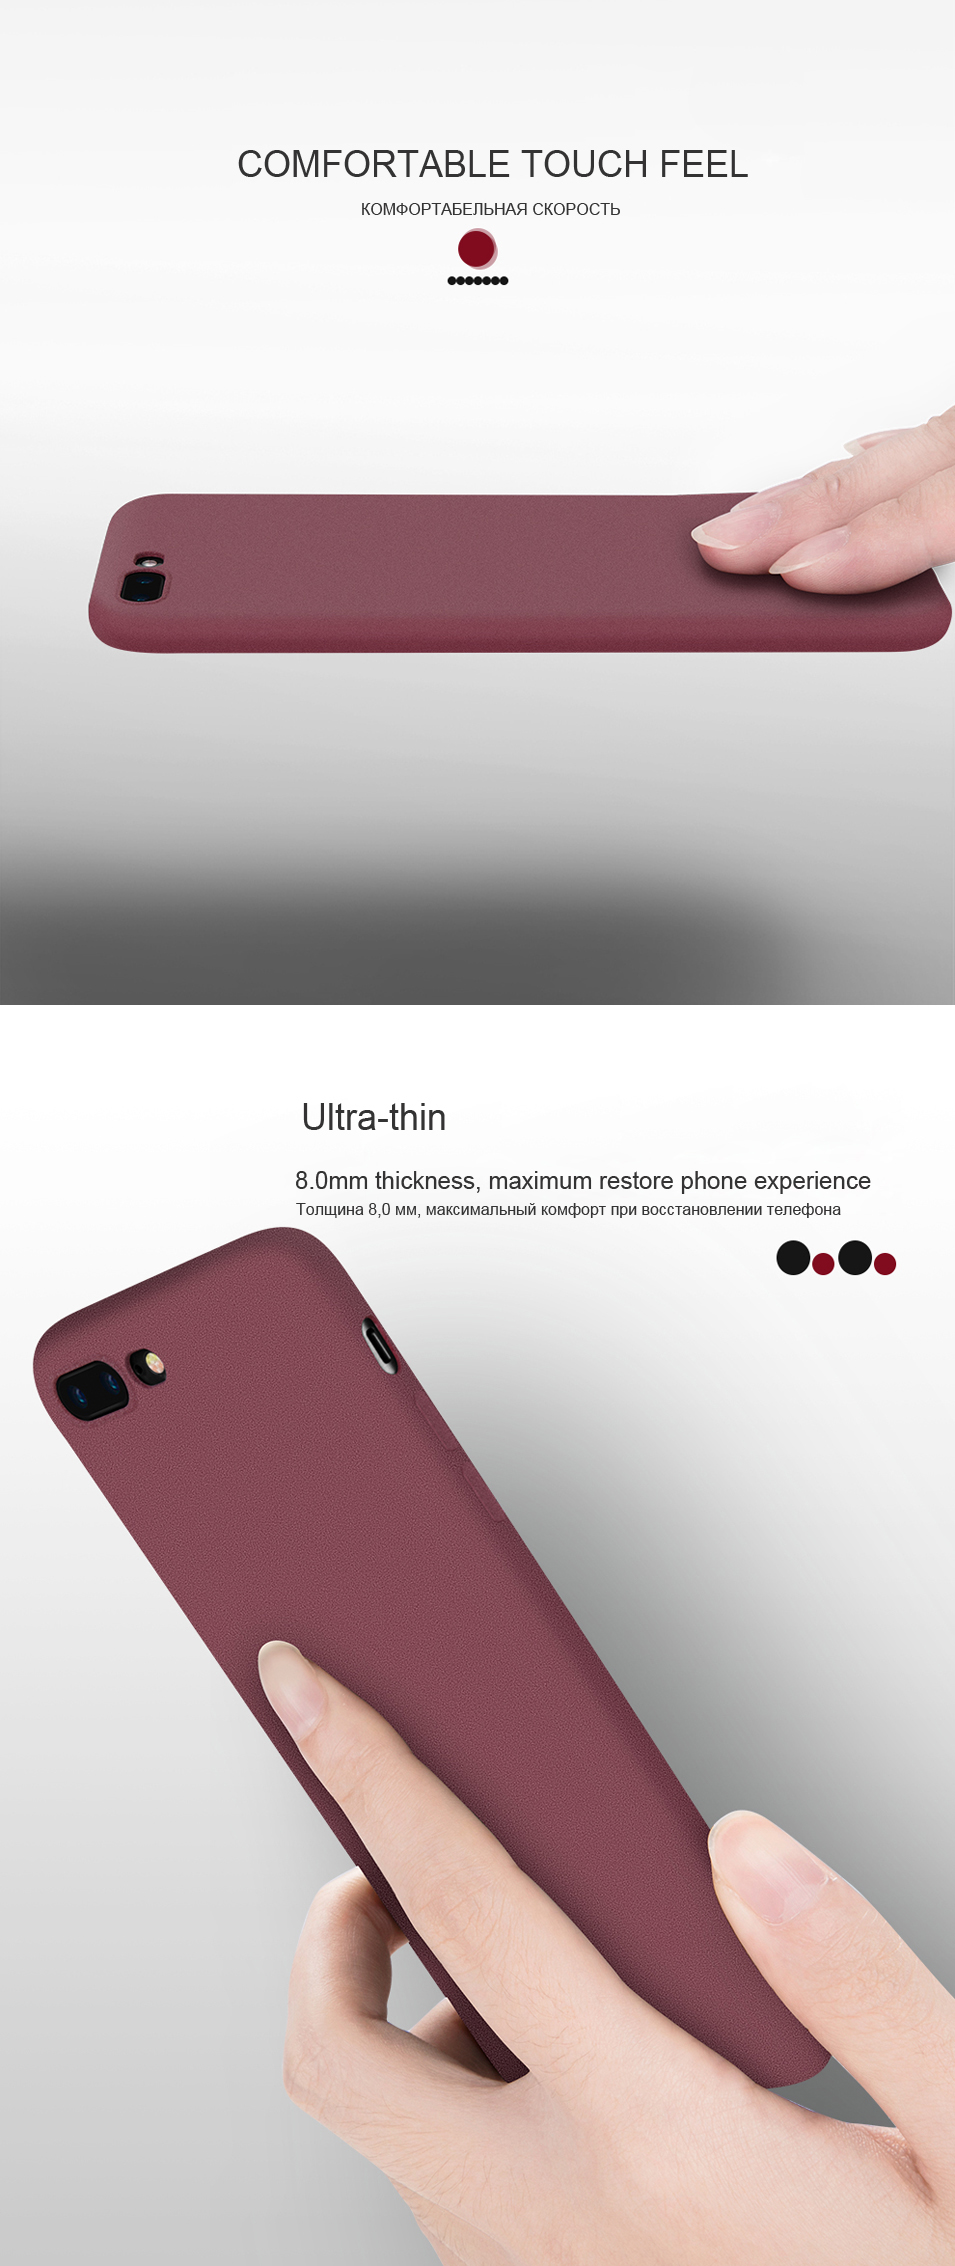 S10 Soft Silicone Matte Plain Protective Cover Neat Phone Case For Samsung Galaxy A50 A10 A30 A40 A60 A70 A80 A90 Bumper (17)